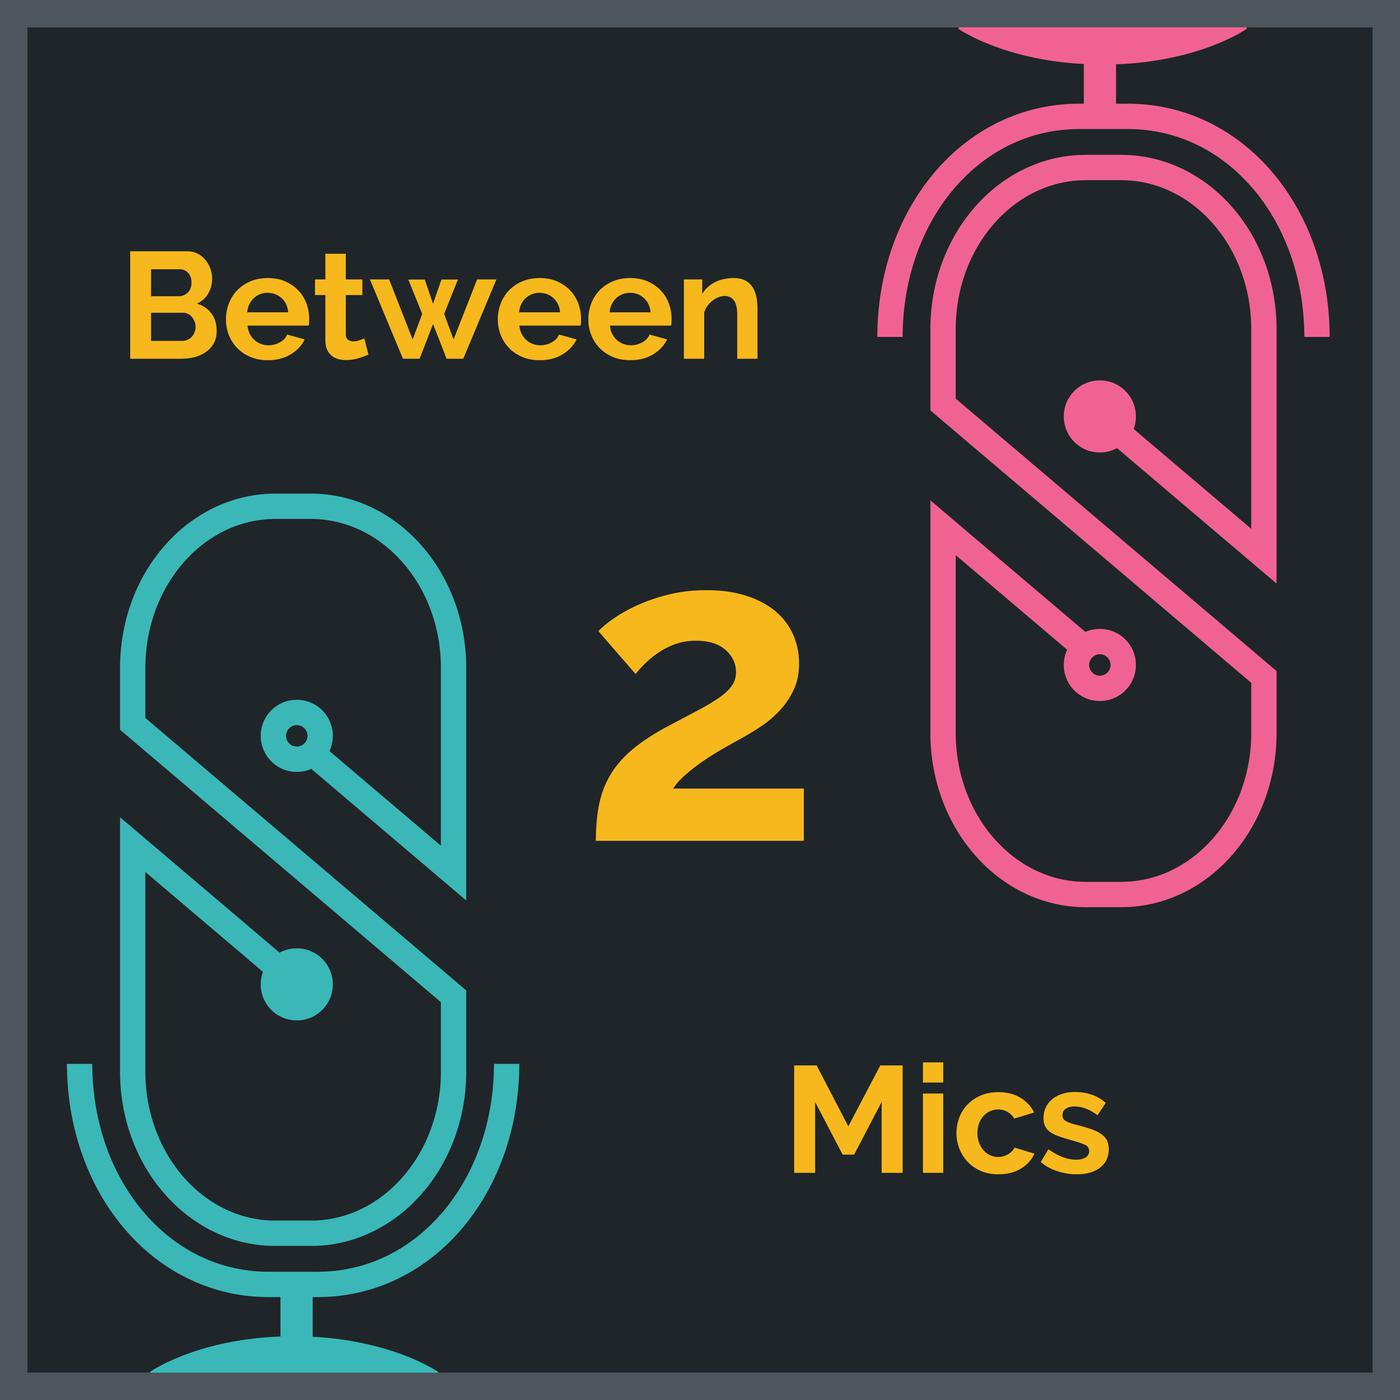 between-2-mics-zach-rock-from-squadcastfm-dqjm35H0YS8.1400x1400.jpg